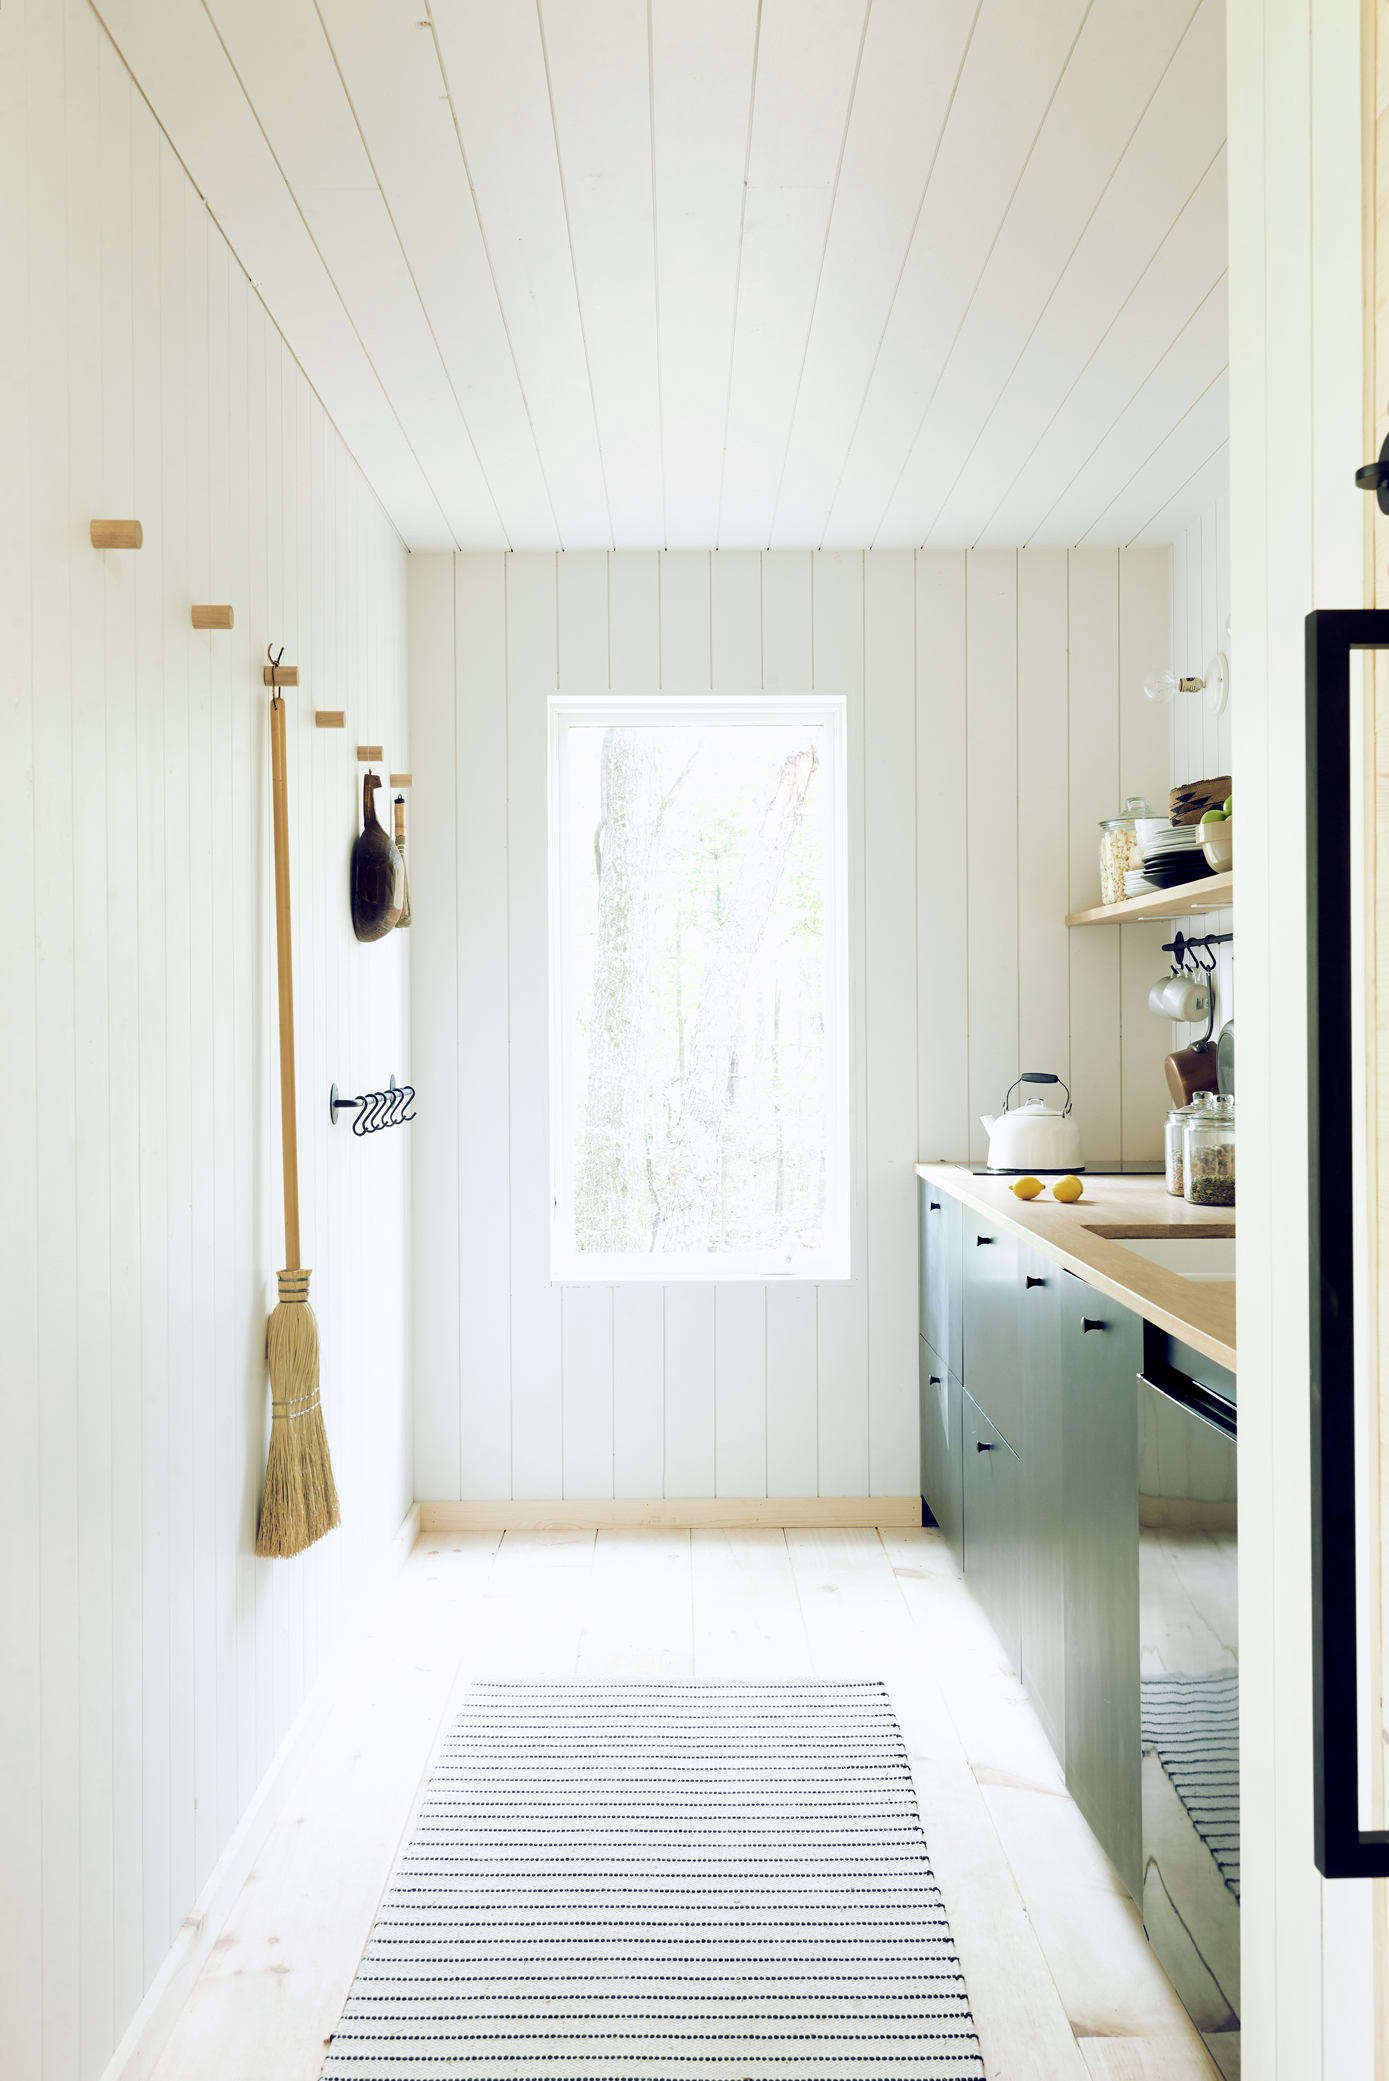 Utilitarian and attractive, invest in a durable broom crafted from natural materials. Photograph by Alexandra Ribar, from Hygge in Ohio: An Architect's Scandi-Inspired Off-the-Grid Hut.